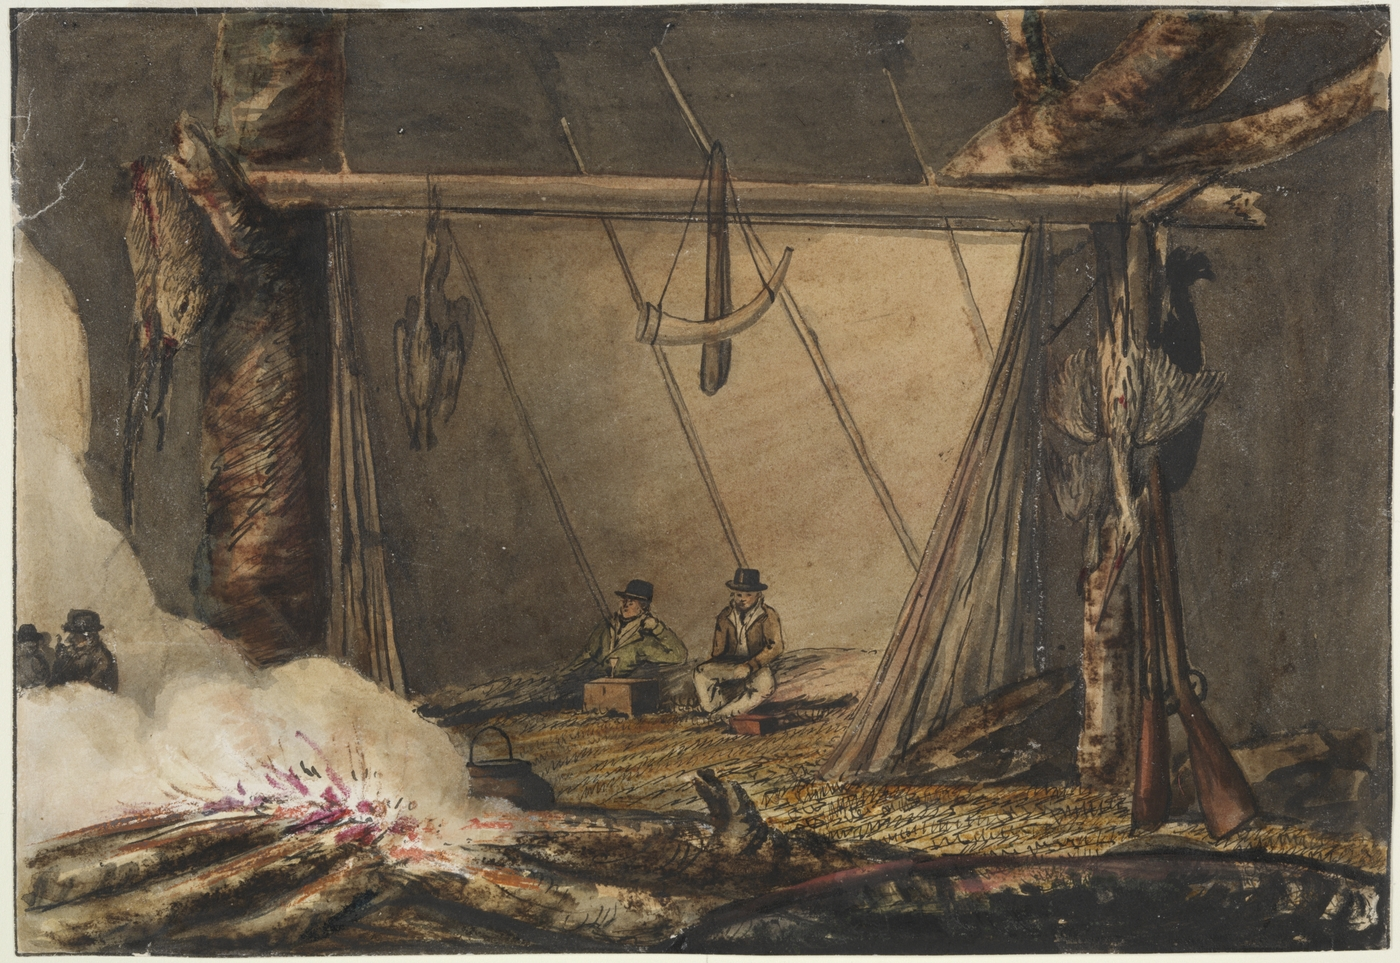 Painting of two men sitting by a fire with killed birds hanging nearby and a horn and rifles placed against a wooden pole